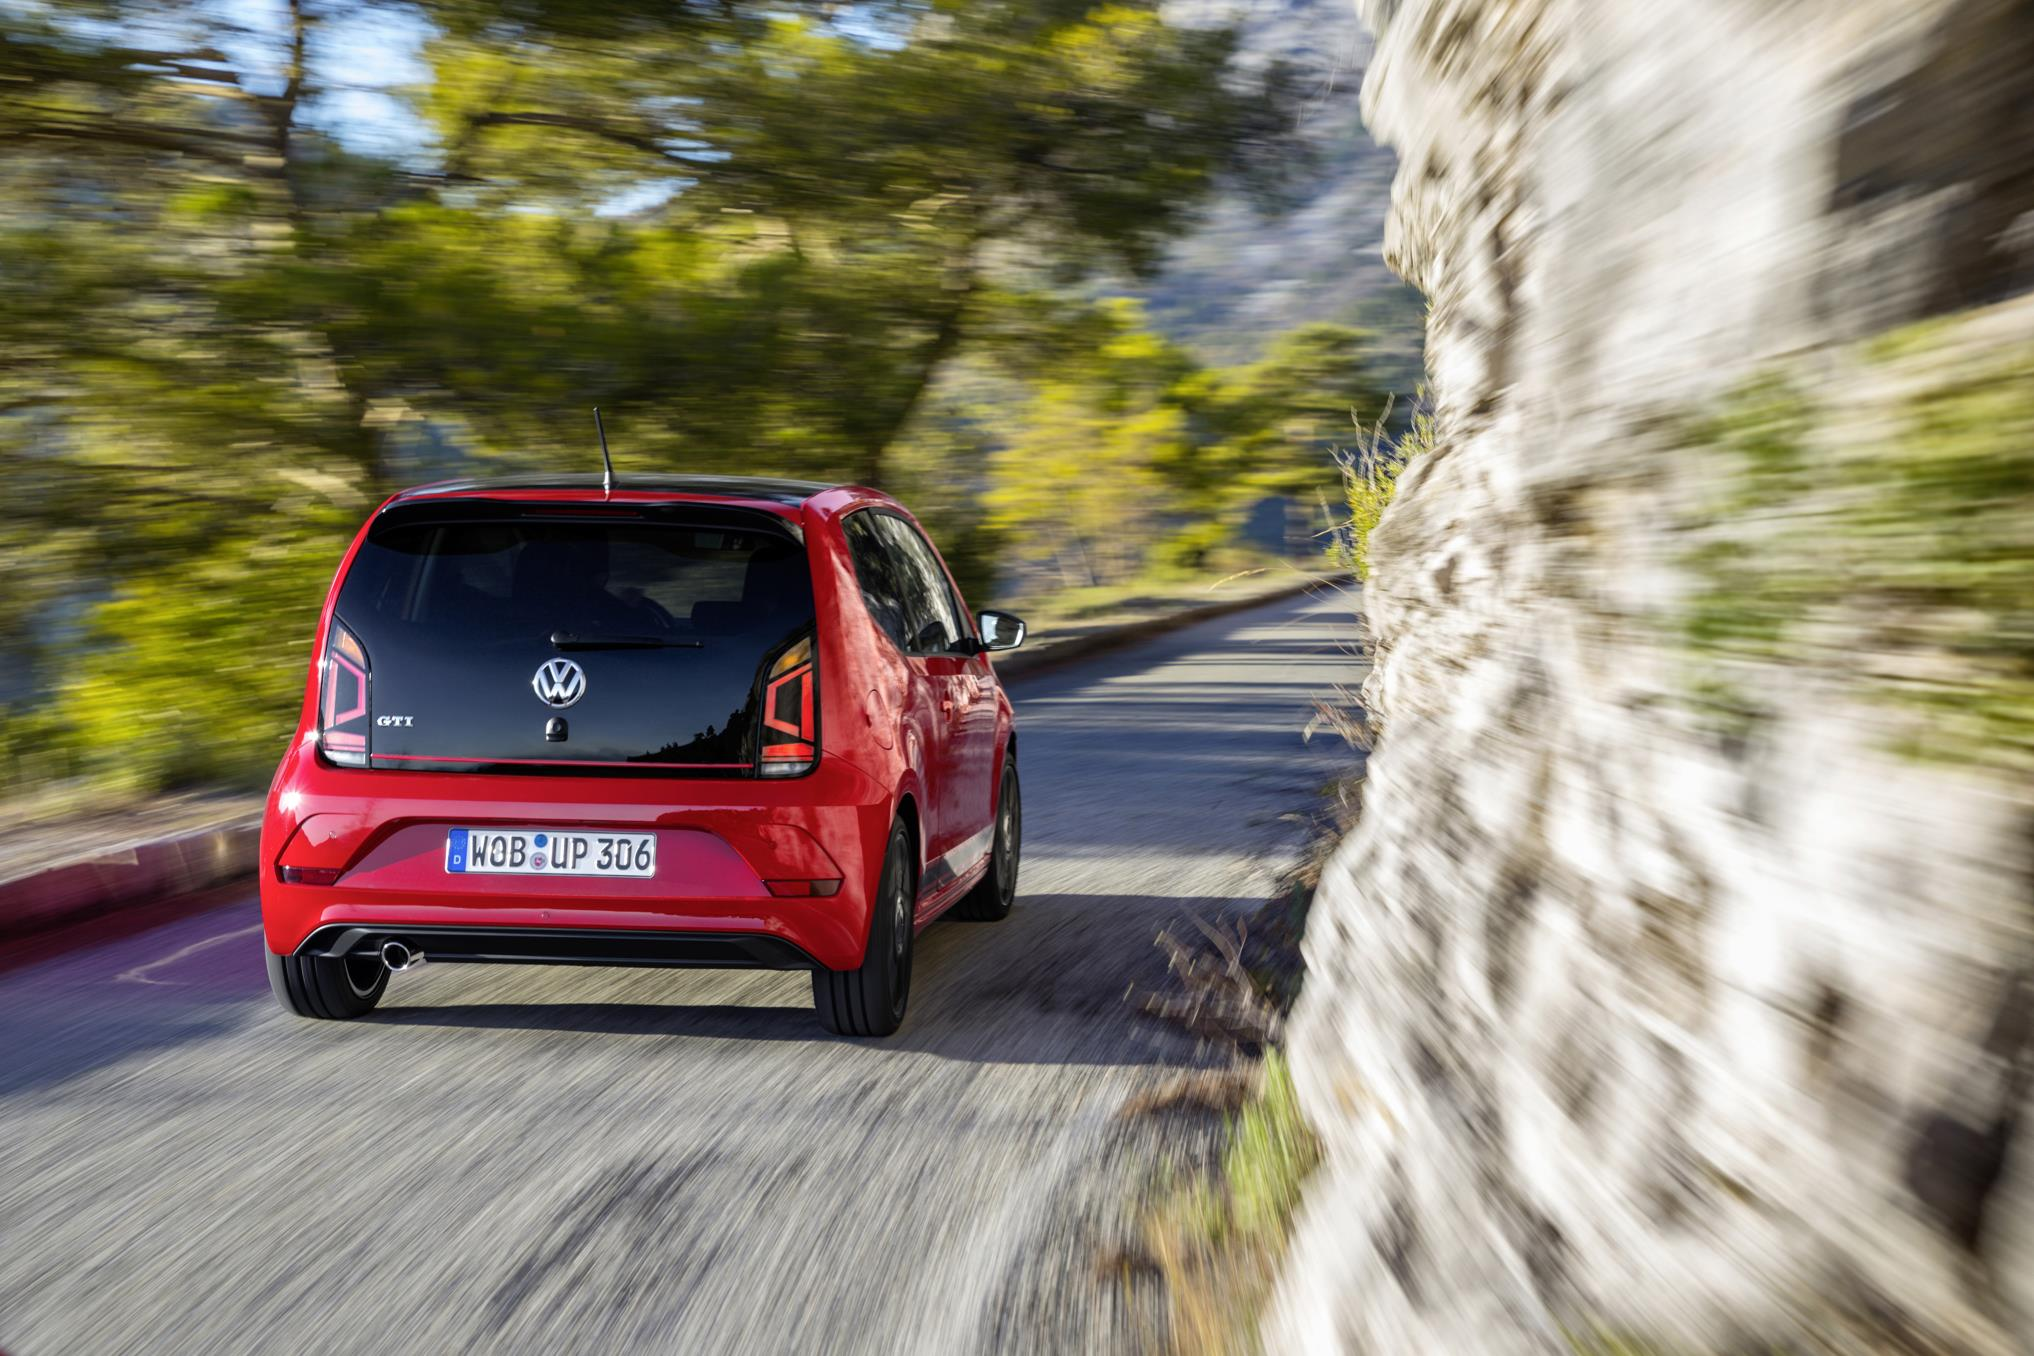 Red Volkswagen up GTI city car driving down country road